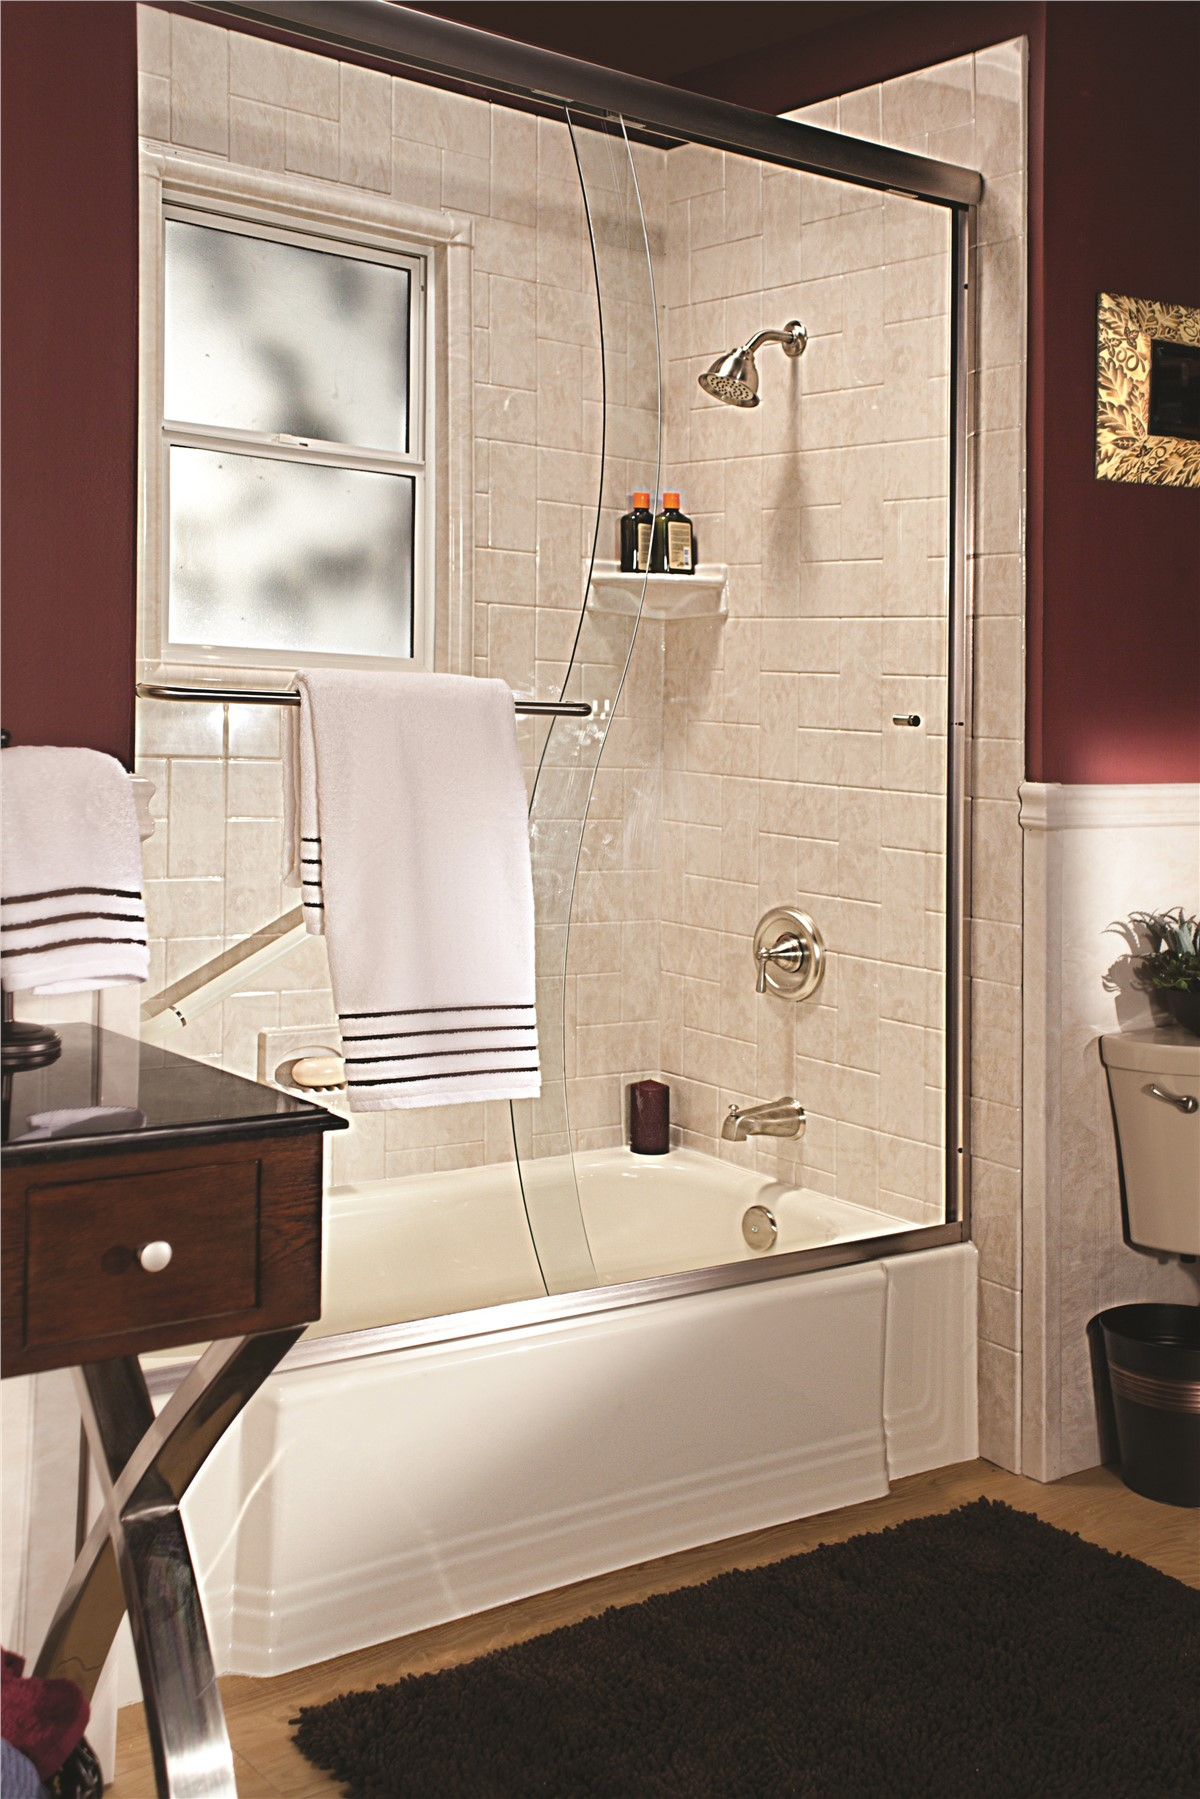 Connecticut replacement tubs ct bathtub replacement for Bathroom contractors quad cities